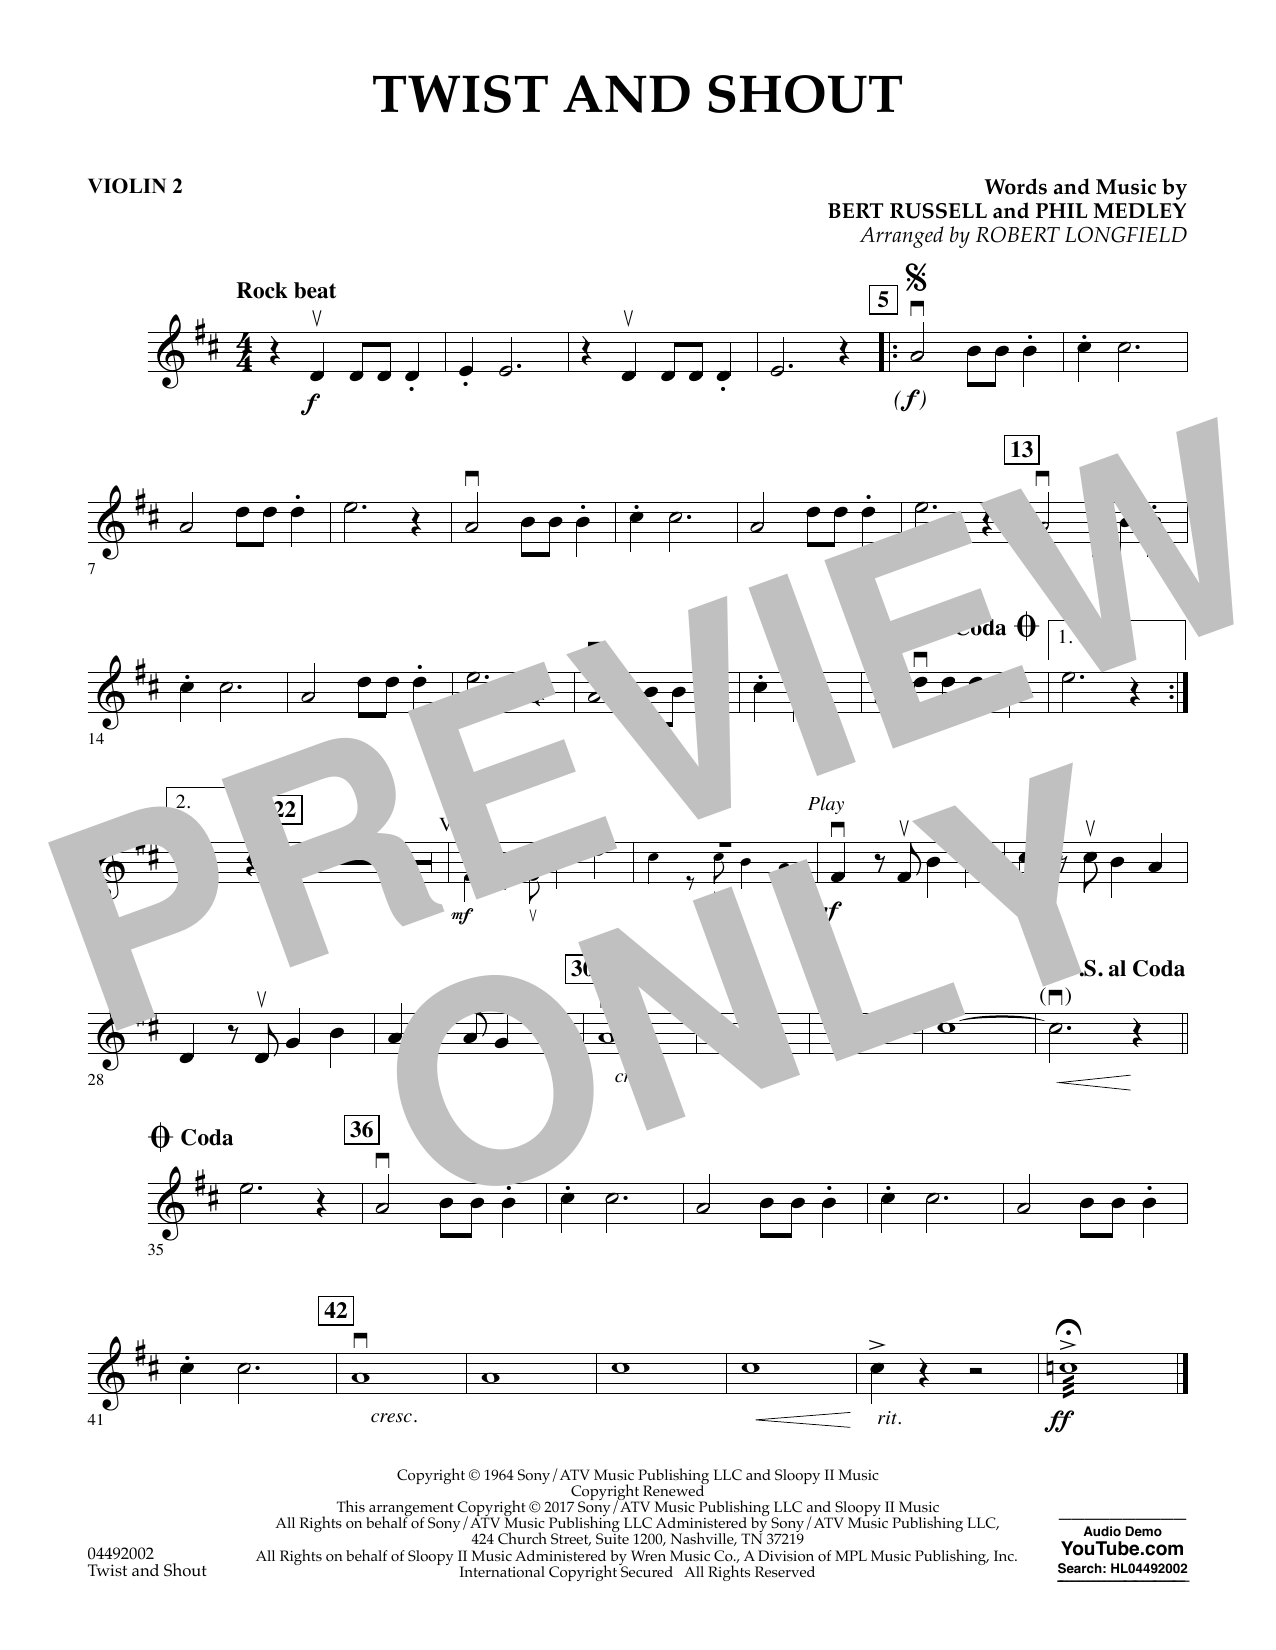 Robert Longfield Twist and Shout - Violin 2 sheet music notes and chords. Download Printable PDF.